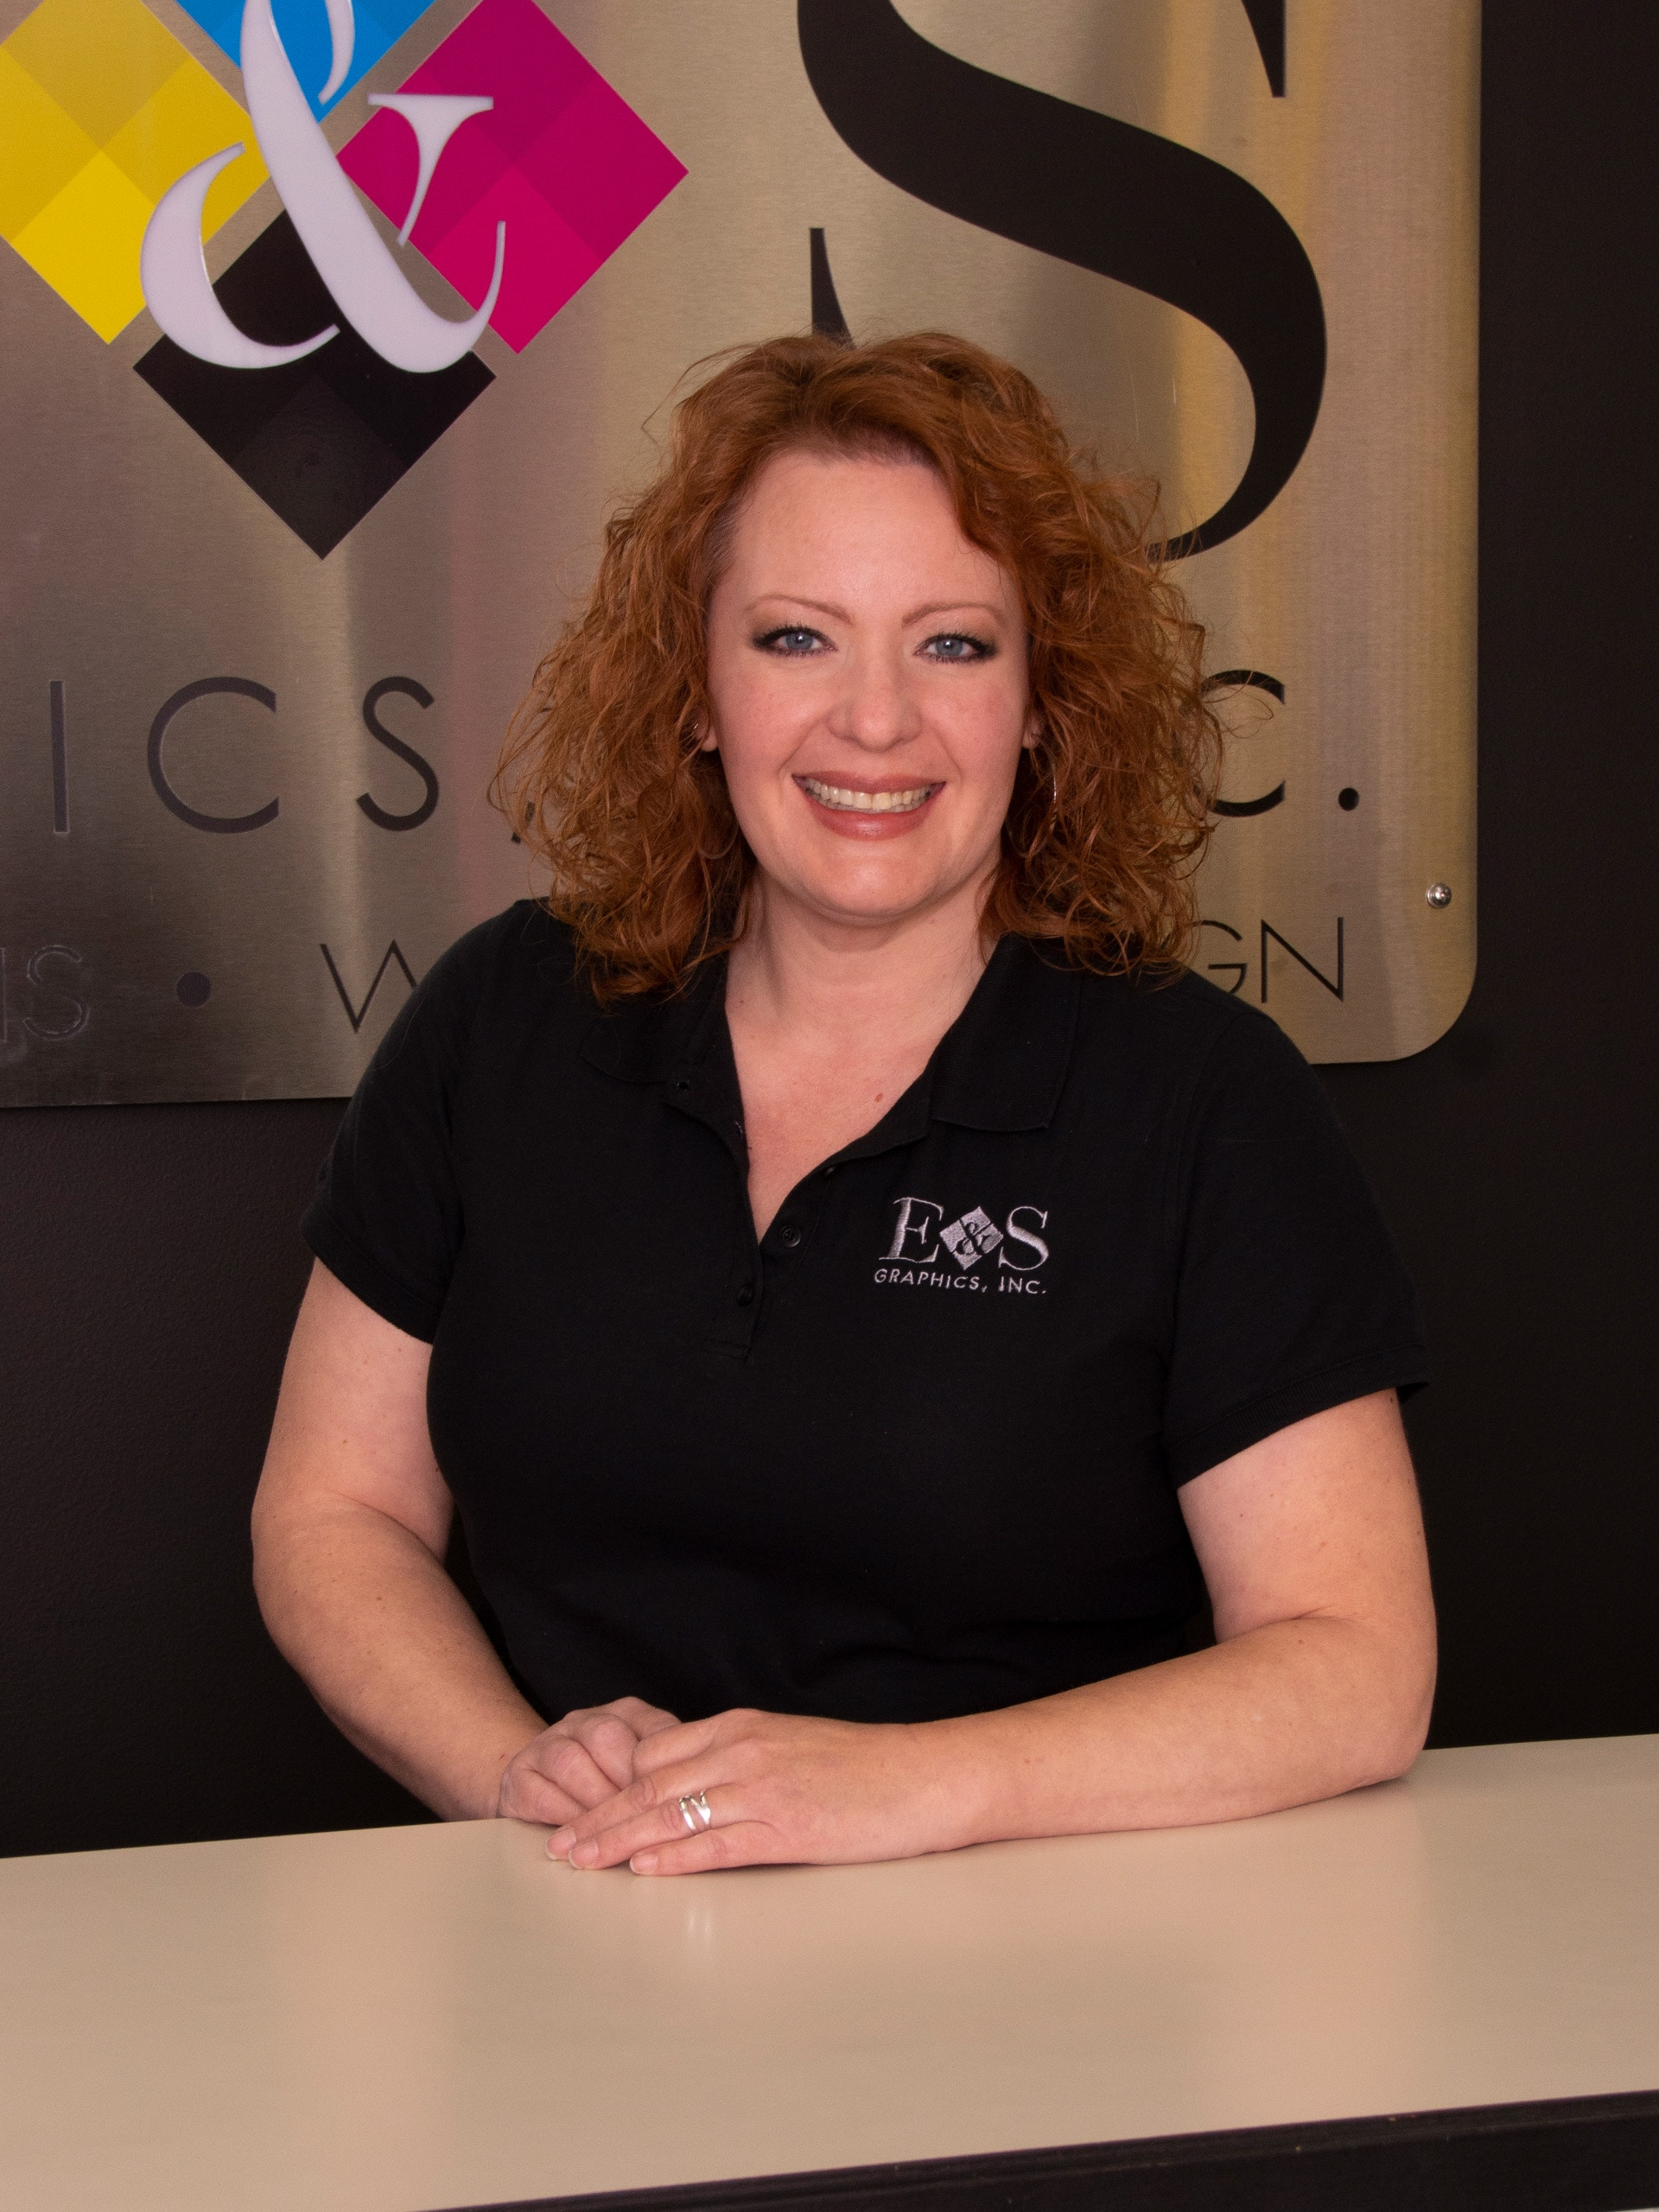 Kate Sullivan, Sign Production & Project Manager, E & S Graphics